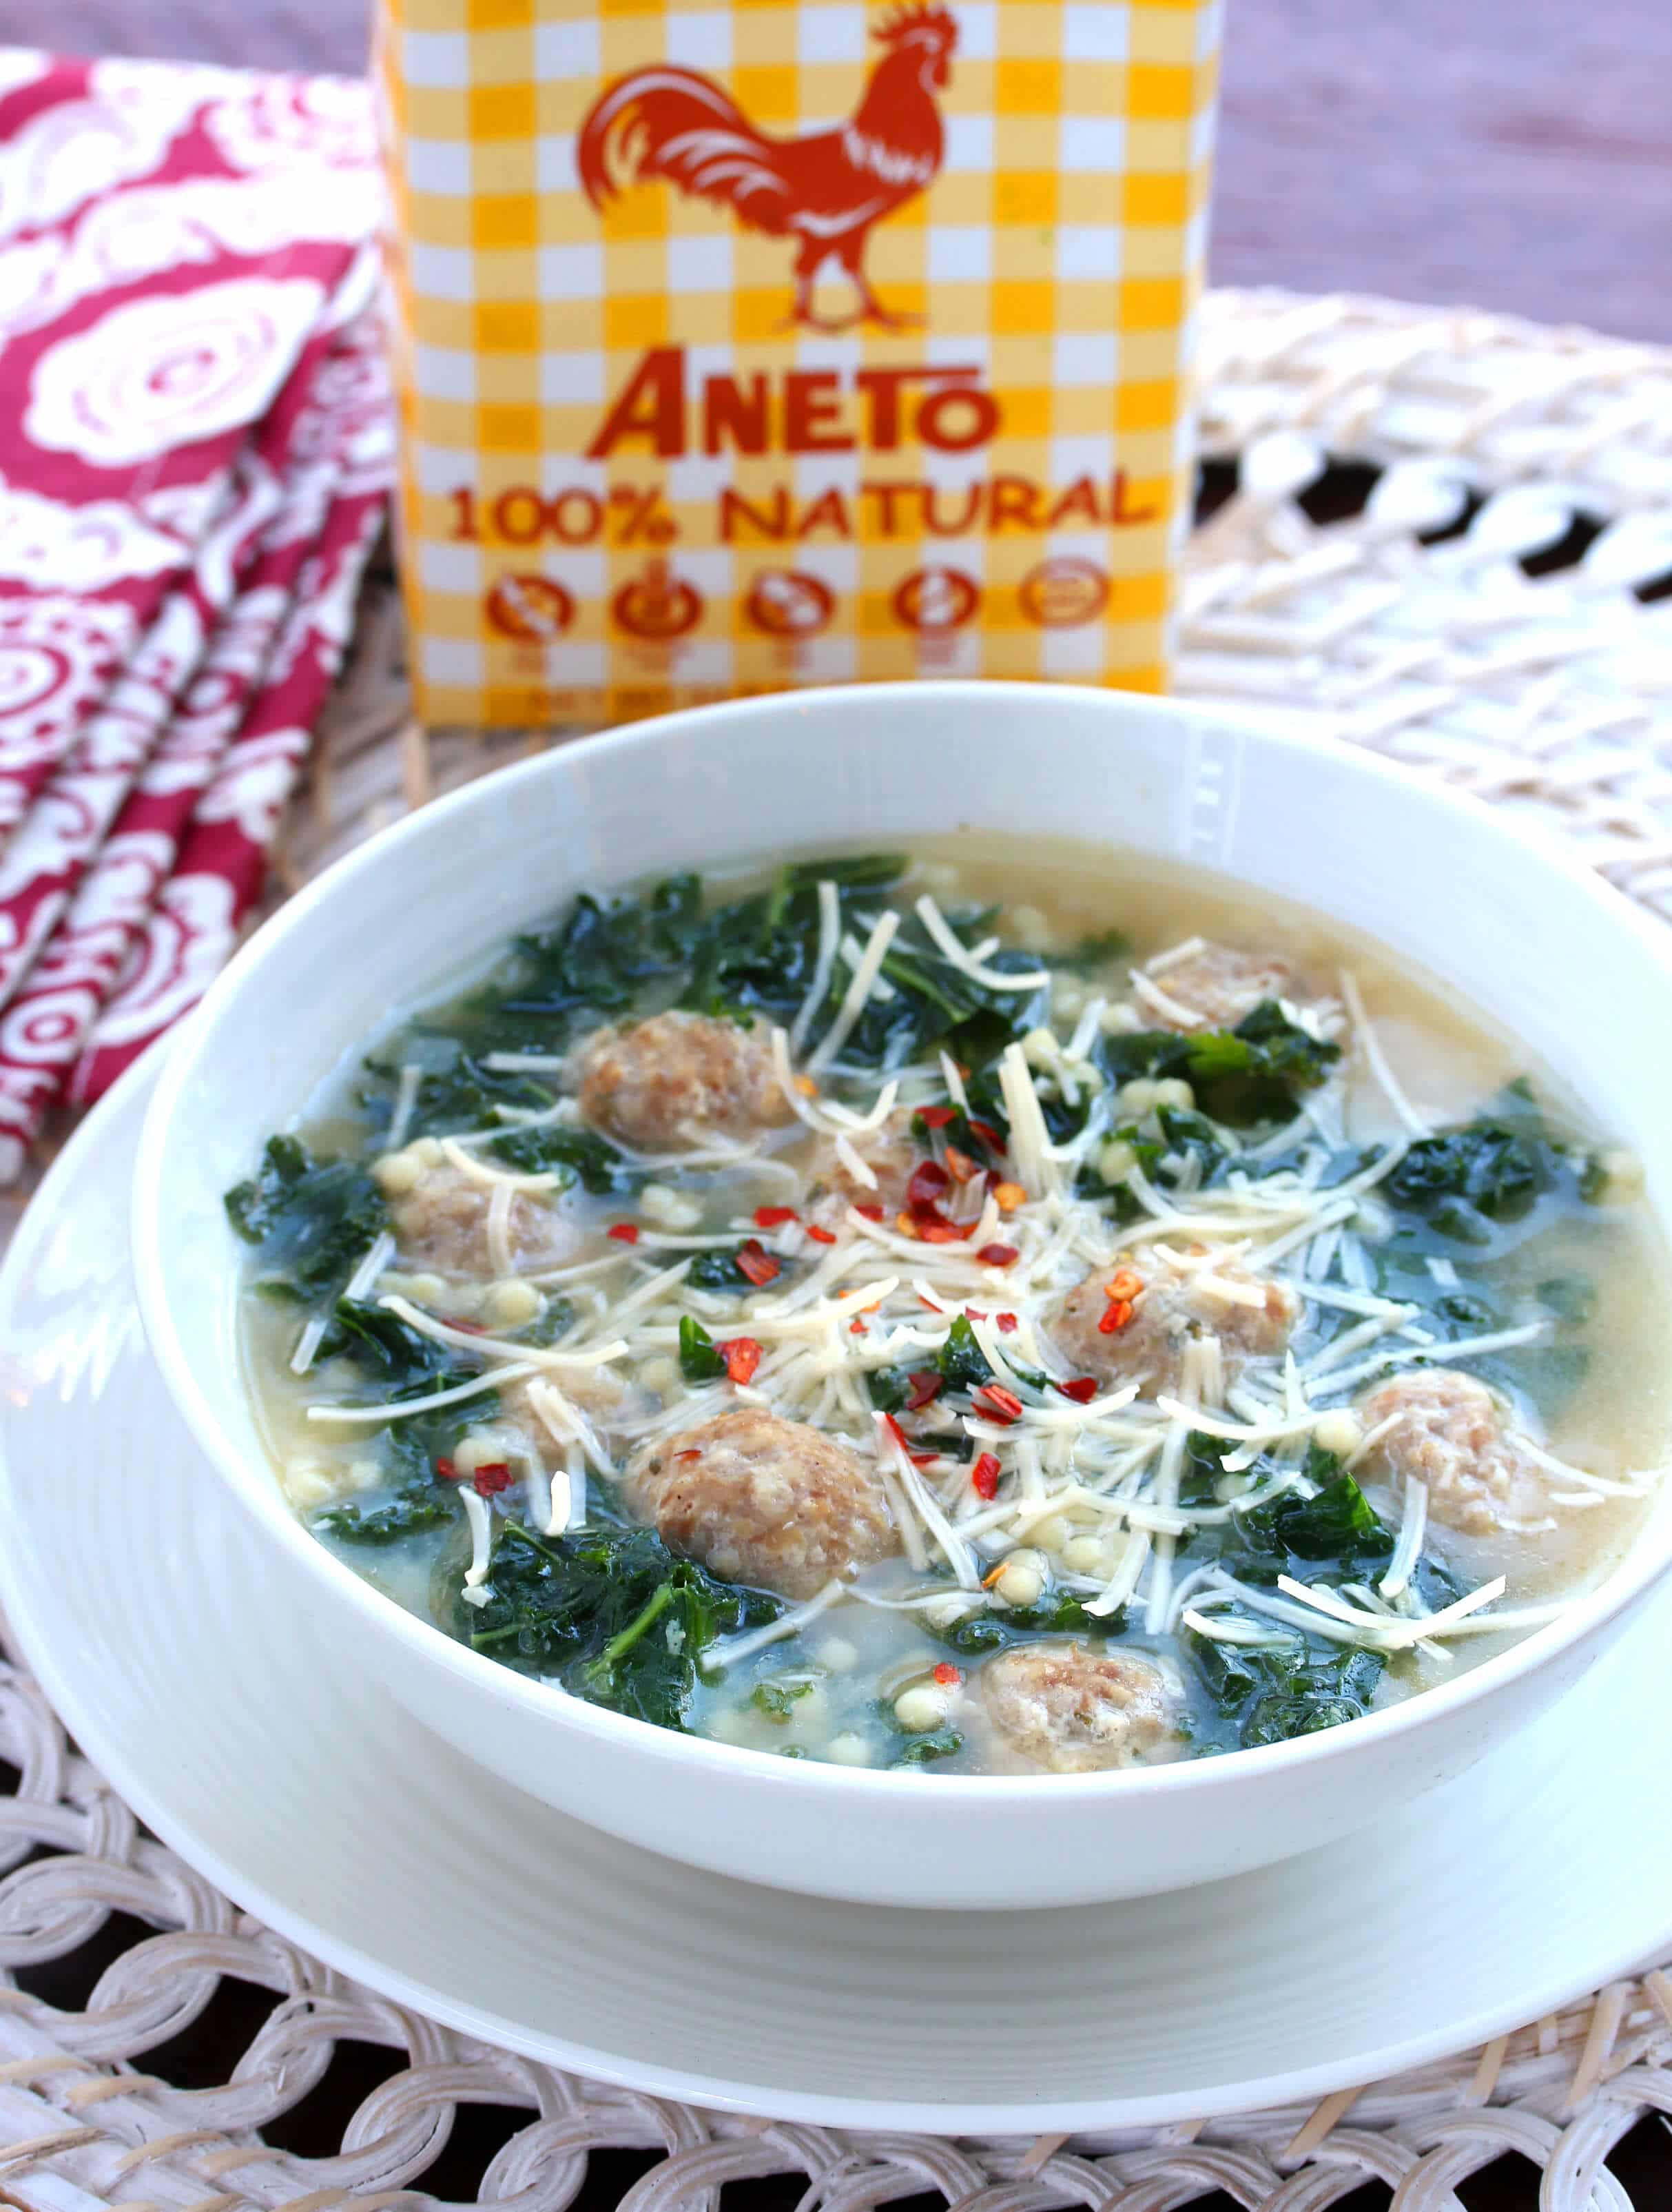 Italian wedding soup recipe best authentic traditional healthy aneto broth